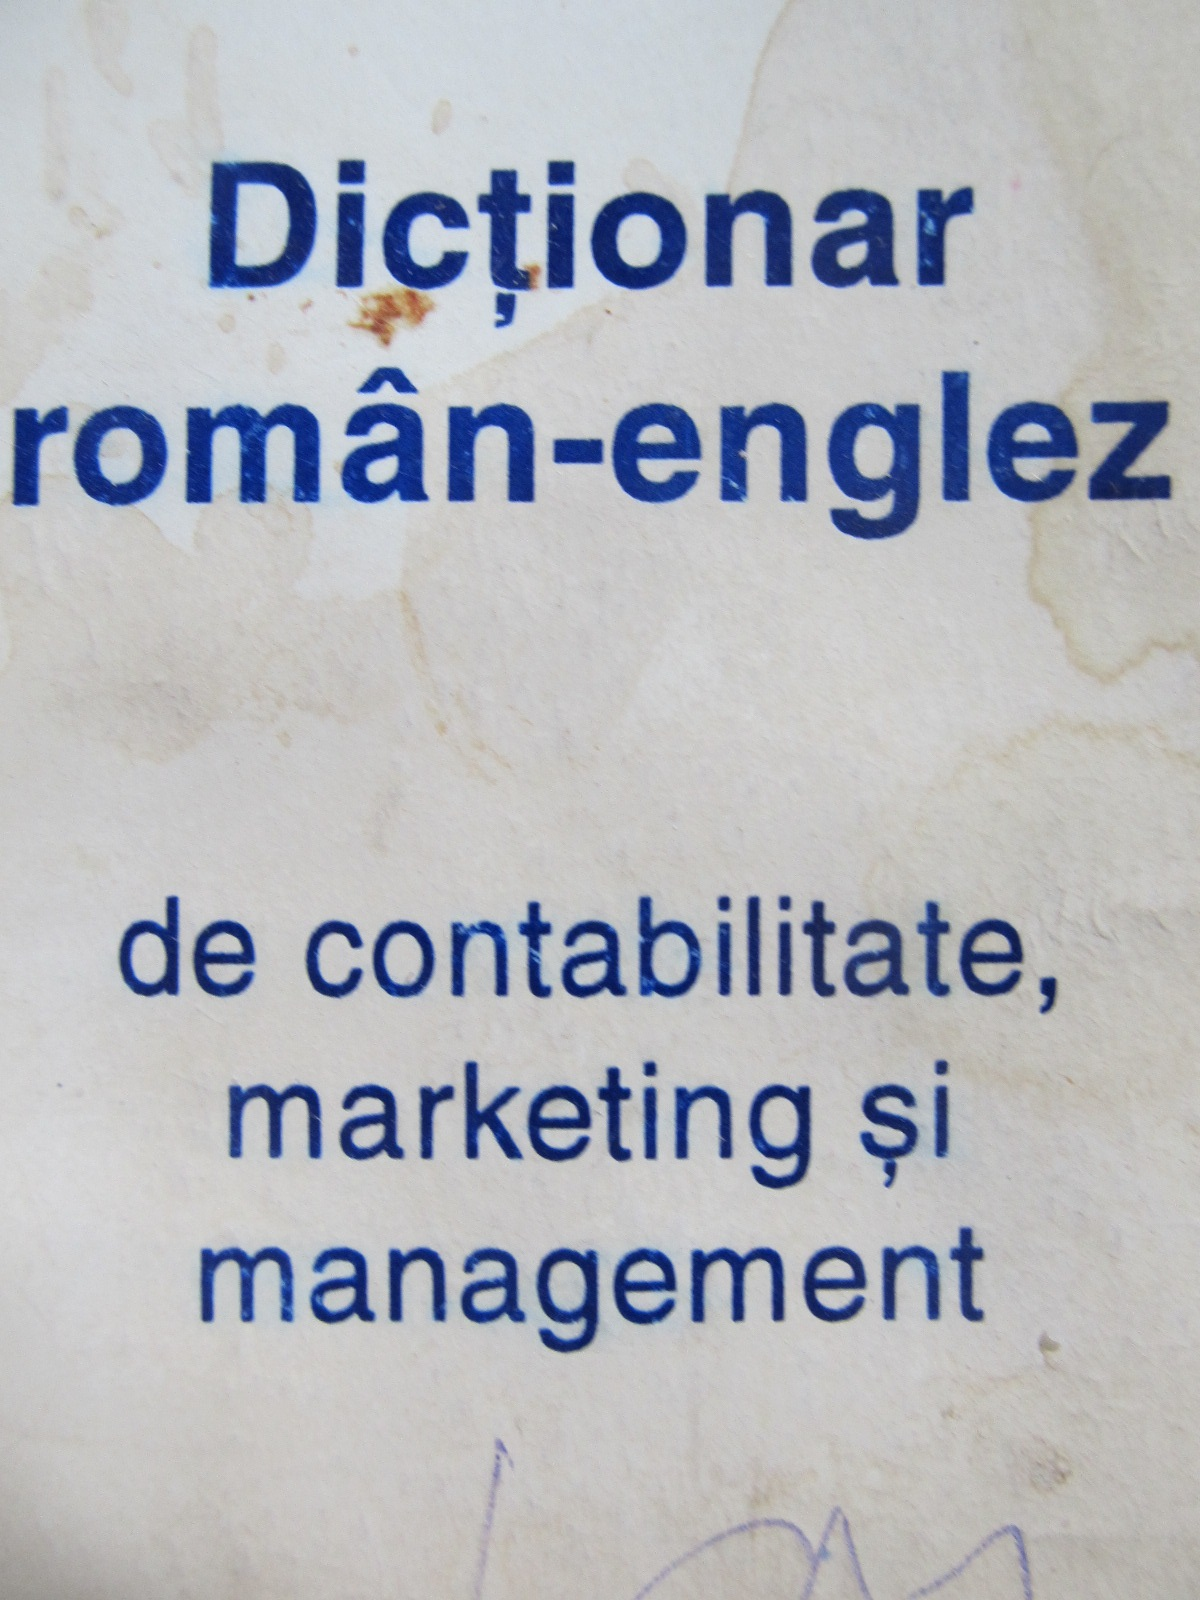 Dictionar Roman Englez de contabilitate marketing si management - *** | Detalii carte